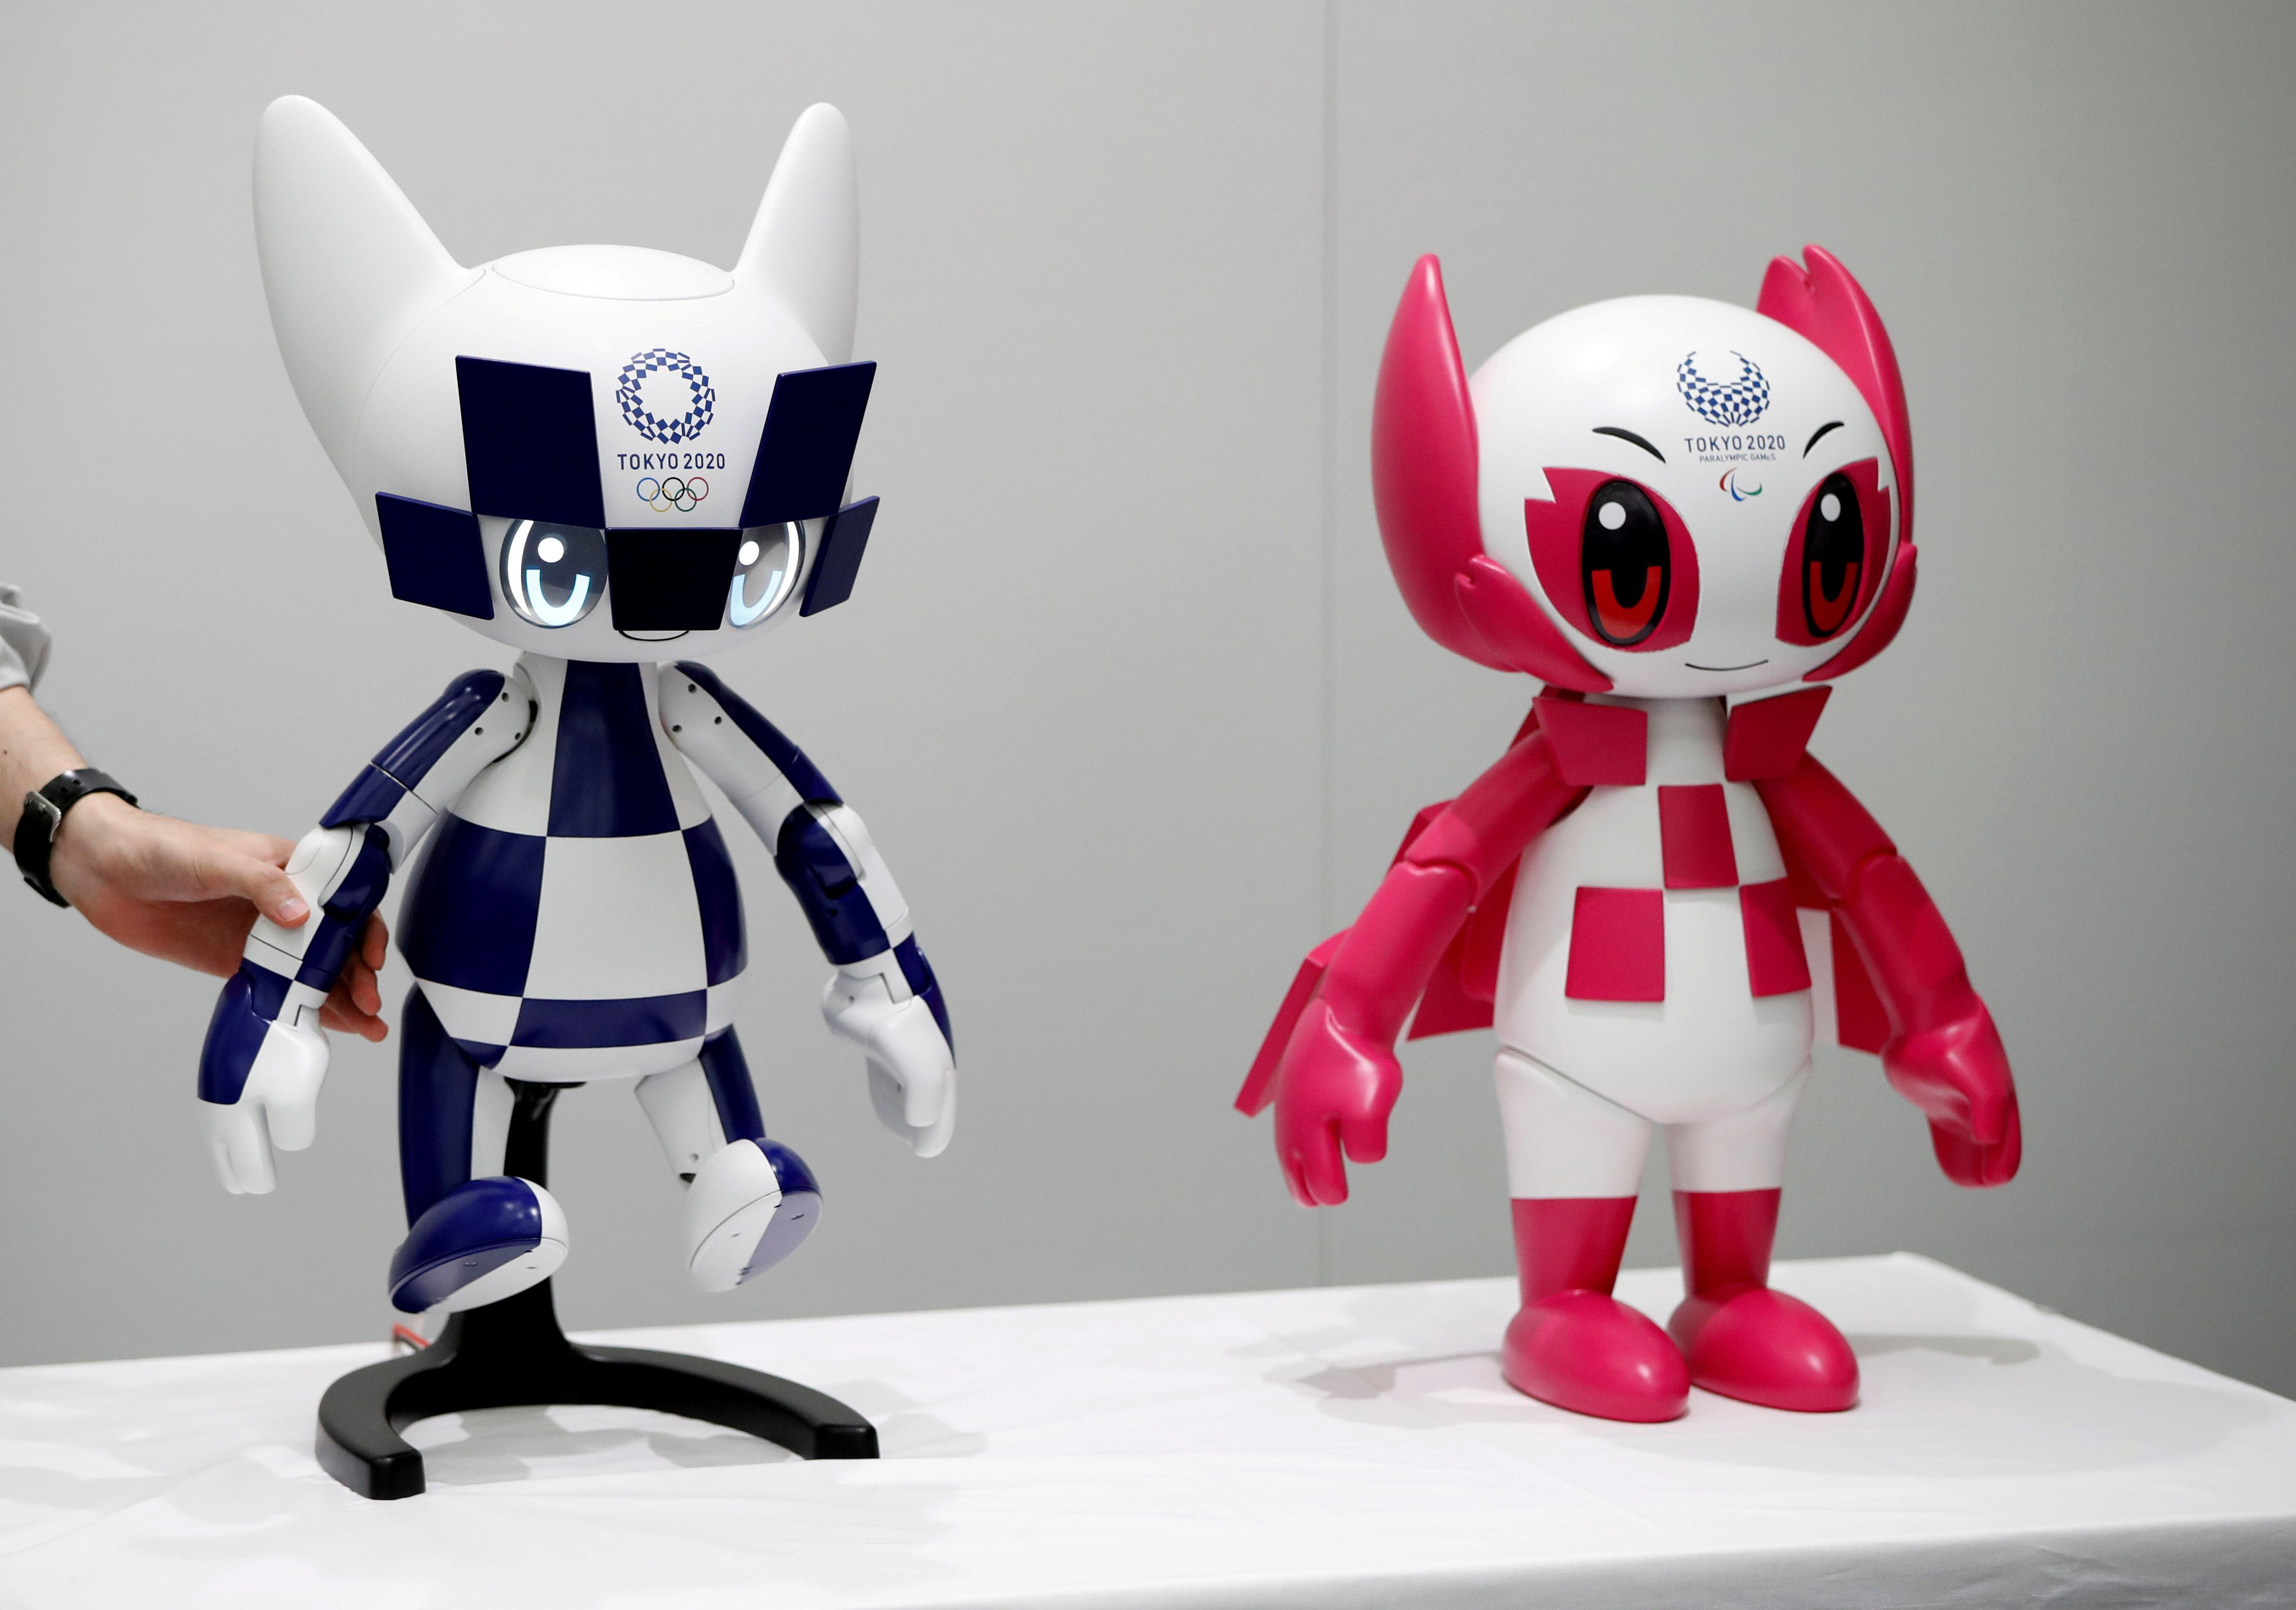 Meet The Robots Toyota Is Bringing To The 2020 Tokyo Olympic Games Https Www Weforum Org Agenda 2019 07 Toyota Tokyo 2020 Robots Tokyo Olympics Tokyo Robot